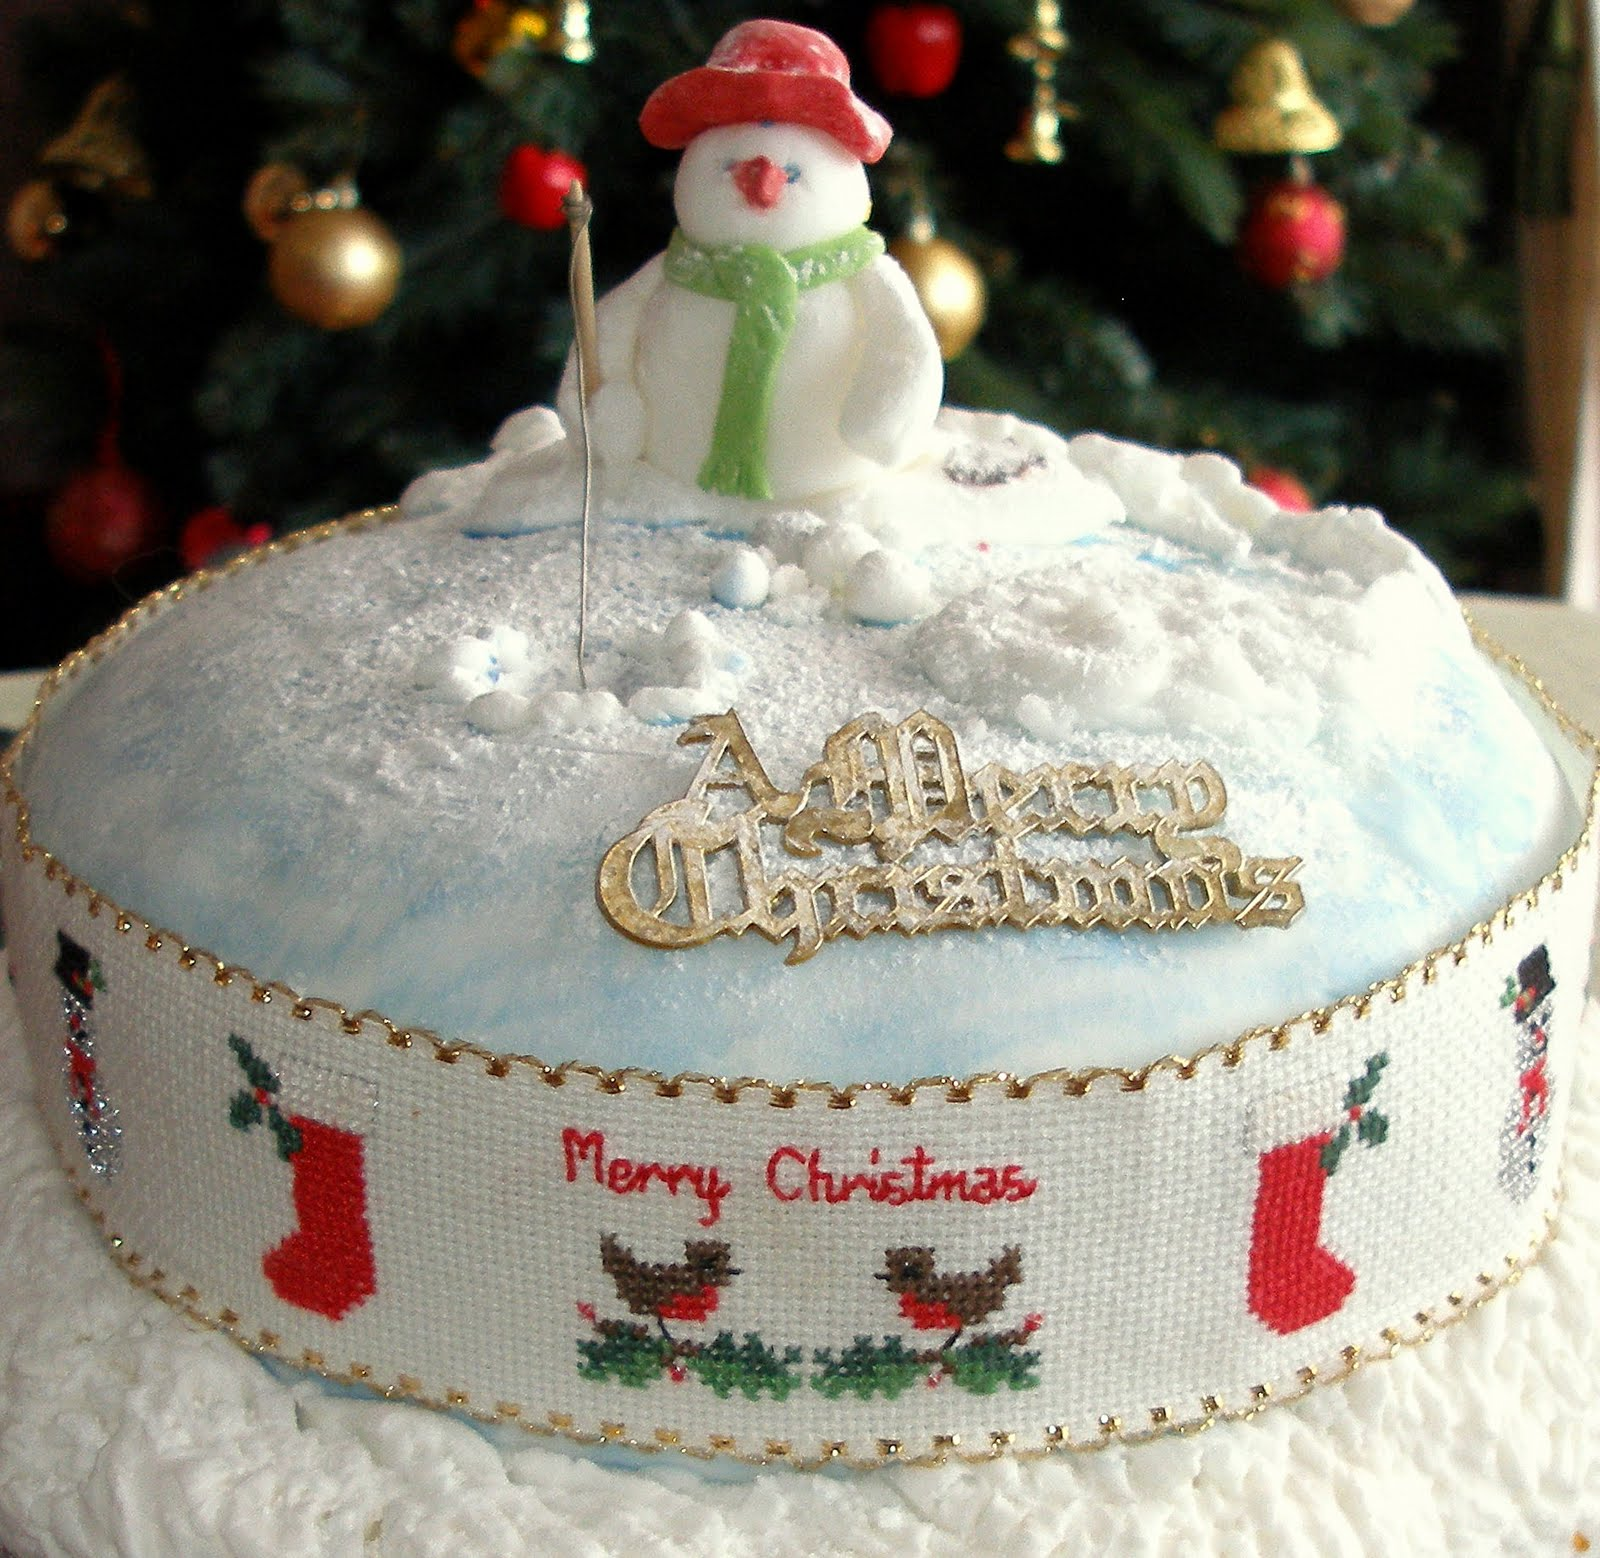 Christmas Cake Images Decorations : konnykards - musings of a senior citizen: Christmas cake ...